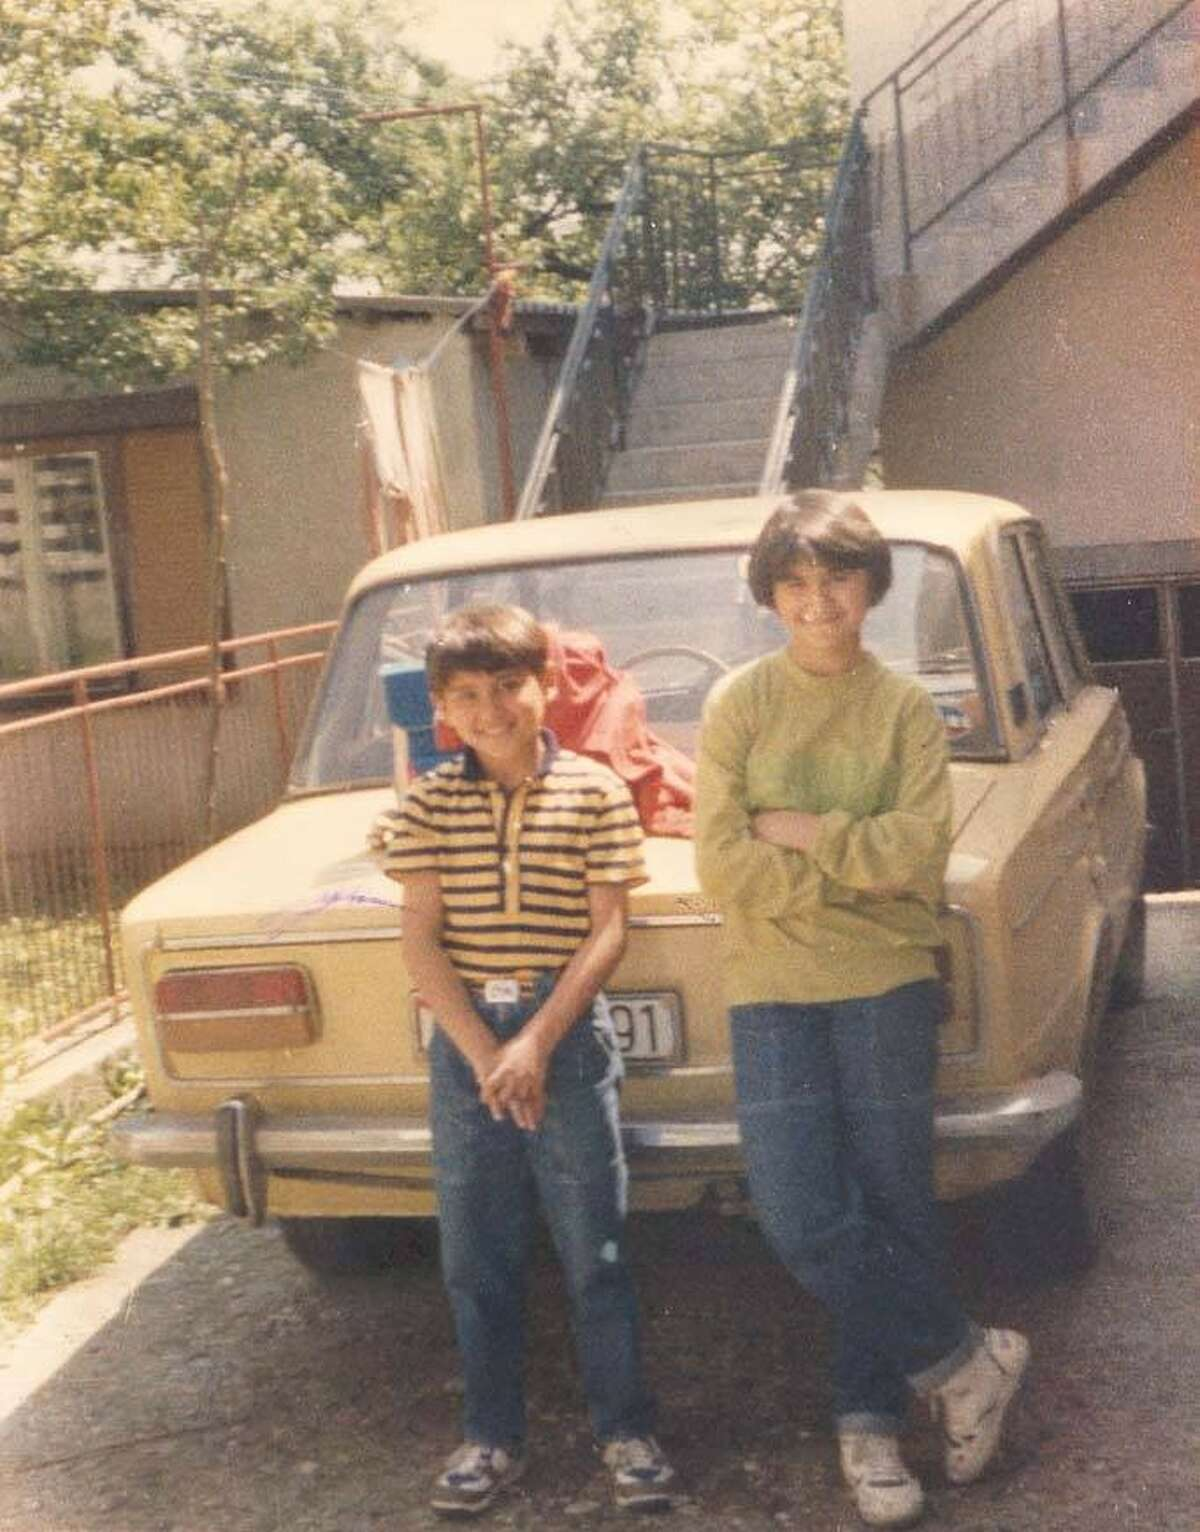 Aimal Kanic, age 13, with her little brother stike a pose next to their dad's beloved yellow Lada. They lived happily in what is now Bosnia until war broke out. They fled the morning after Serbian soldiers began going door to door arresting all Muslim men and boys. The horrible reason for the roundup would soon be clear.